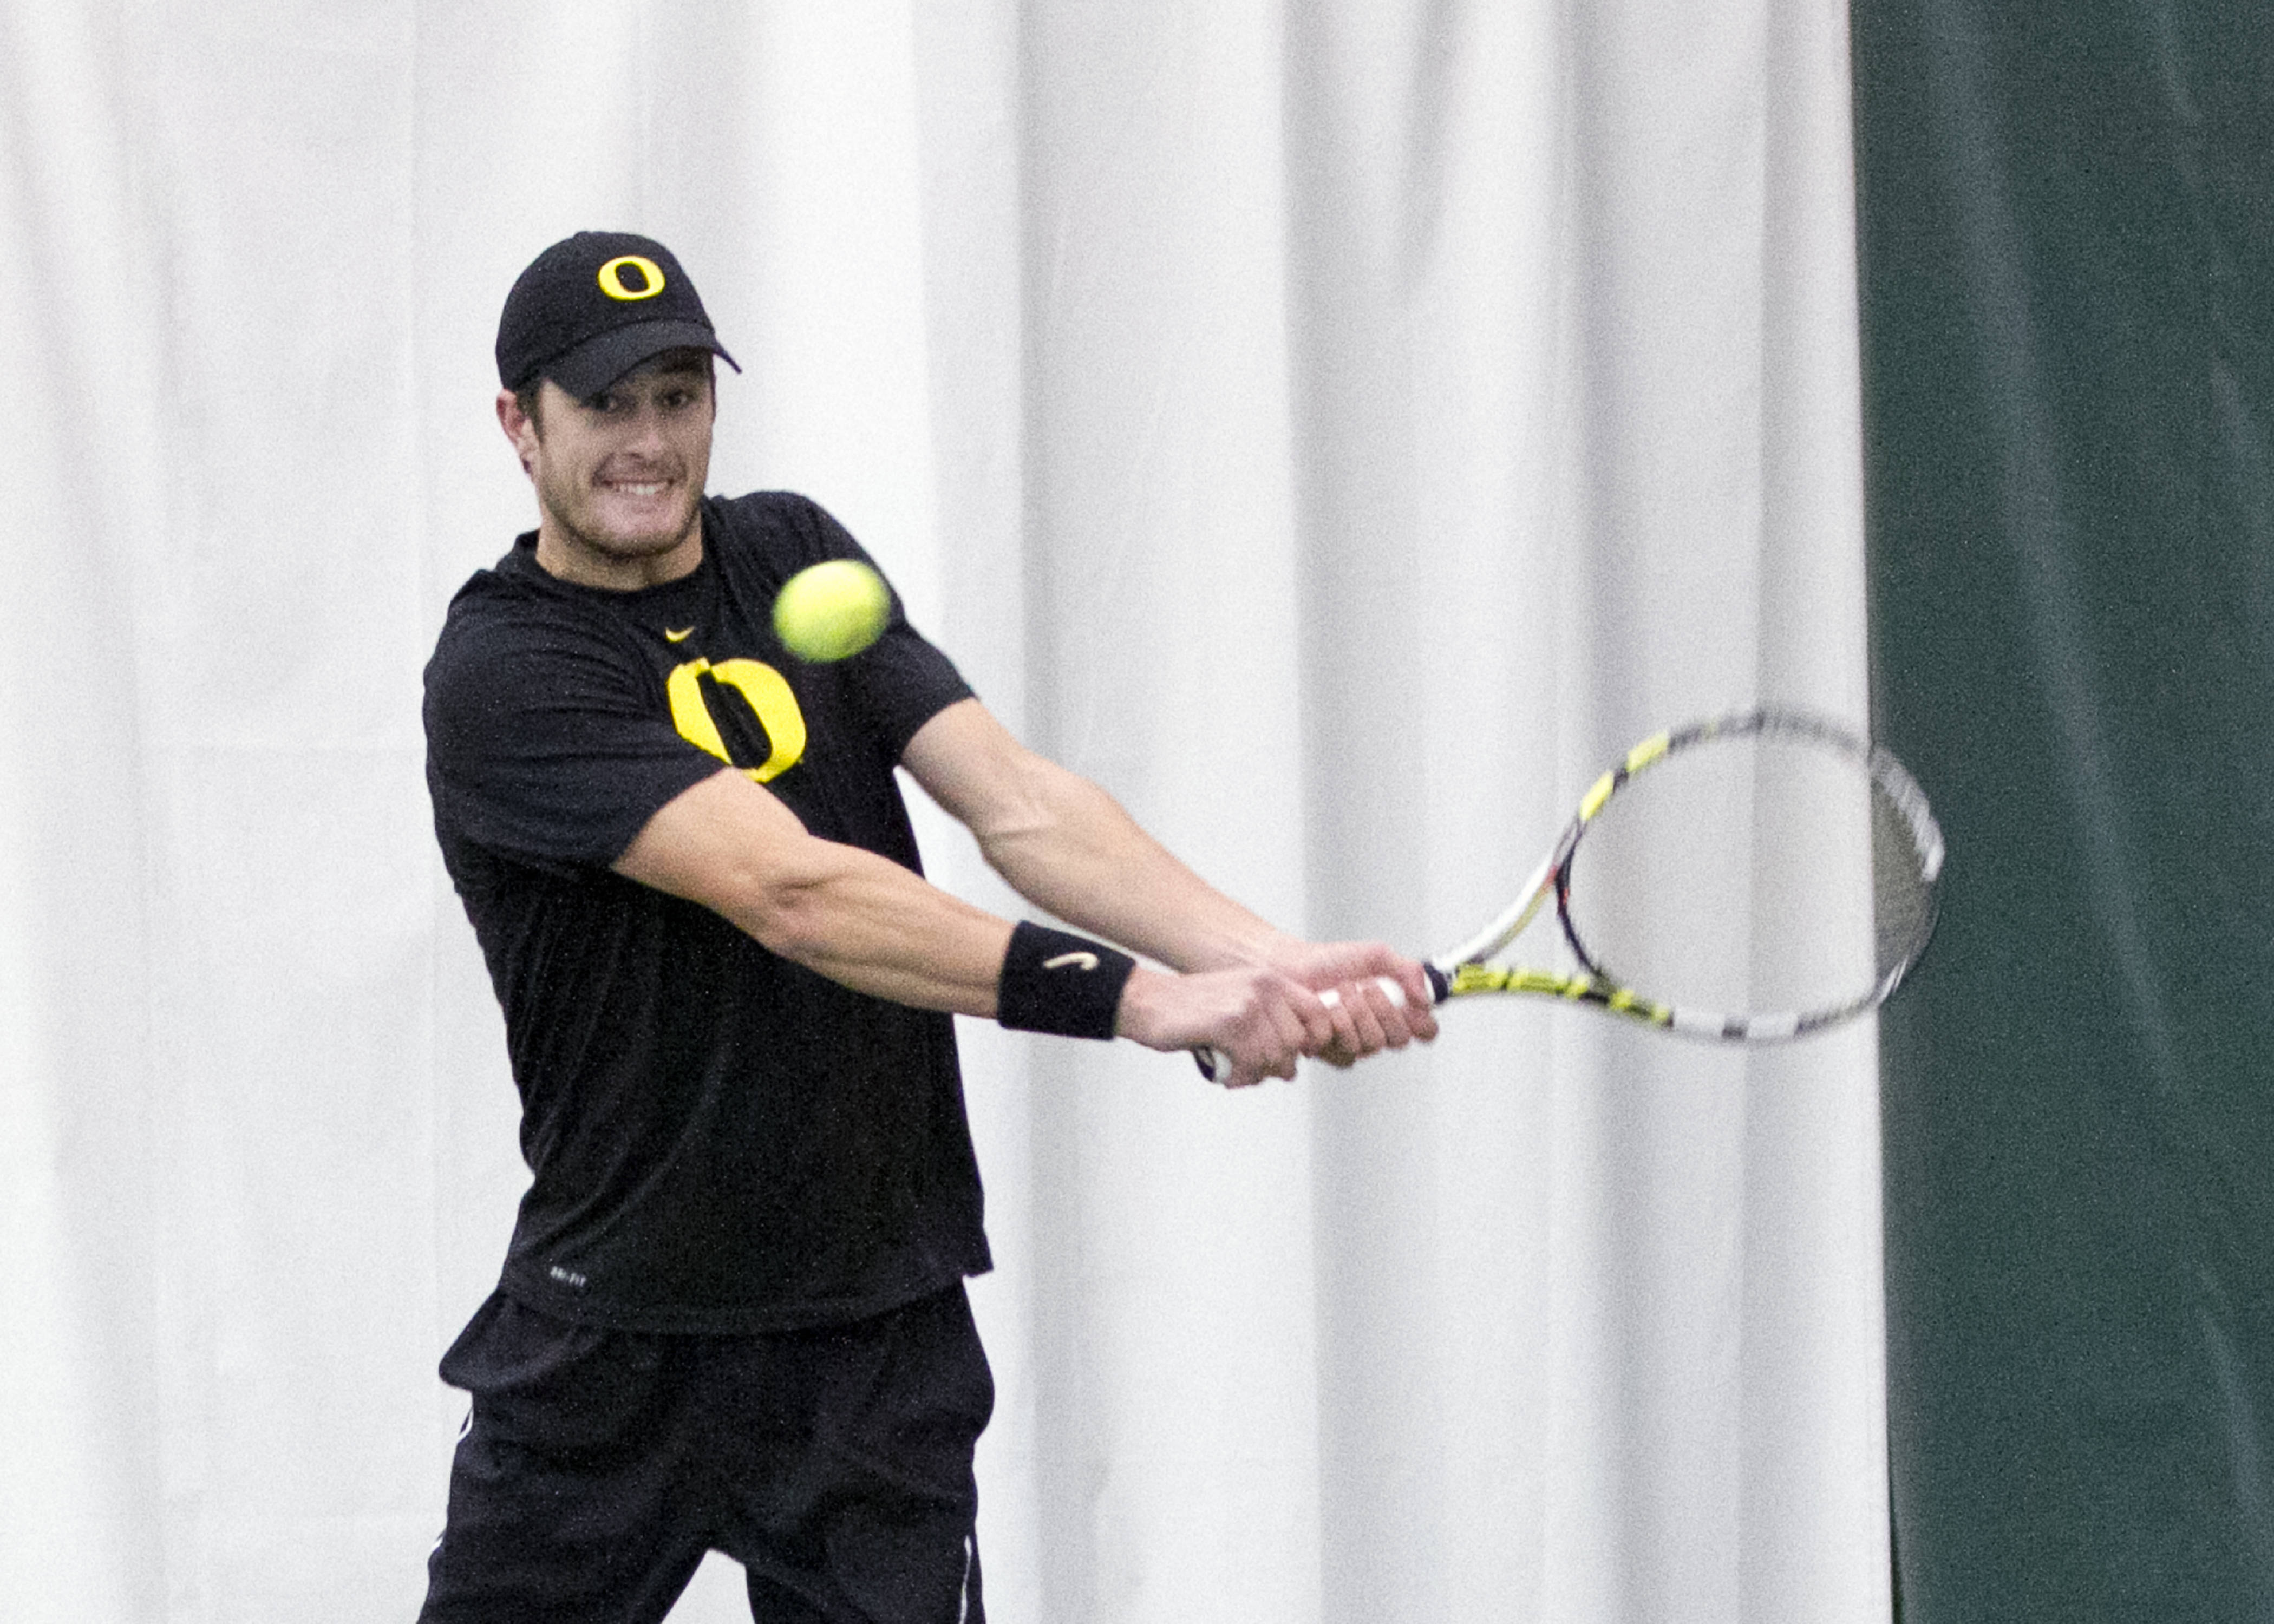 Tennis Excels at PNW Stevens Wins at Jack Kramer GoDucks